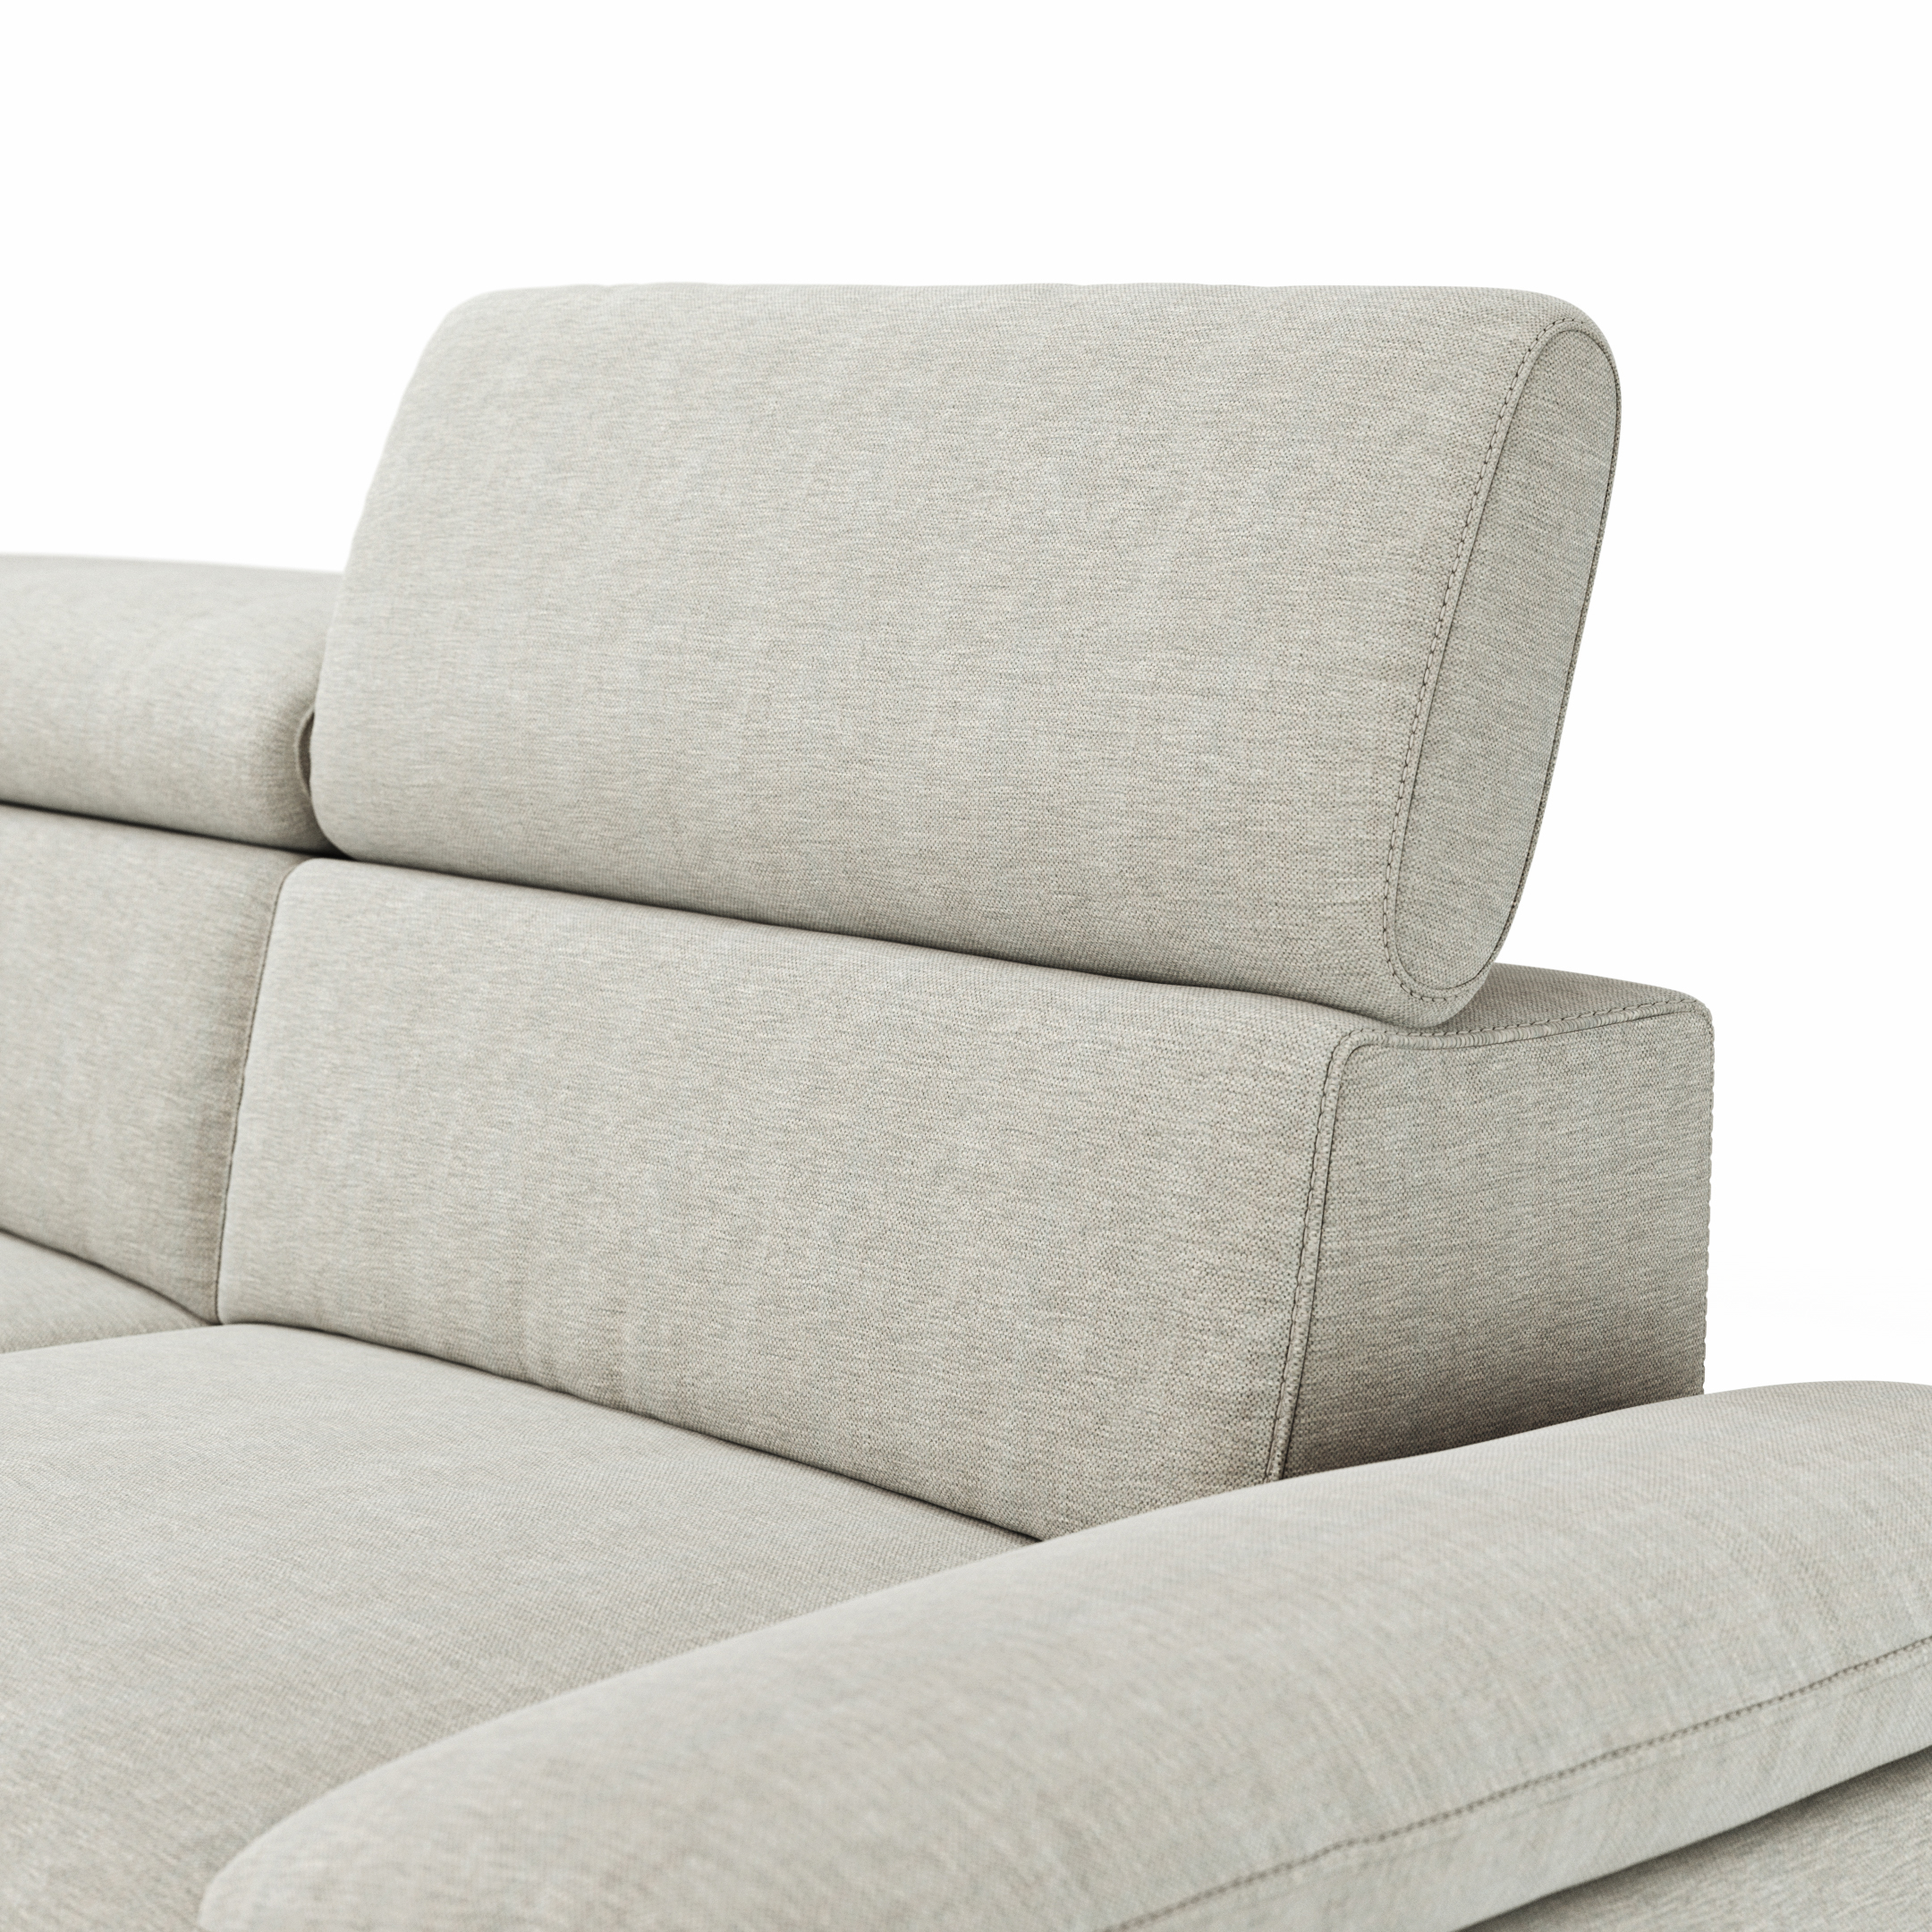 Global Family Ecksofa Felipa detailbild 2 105099 | Homepoet